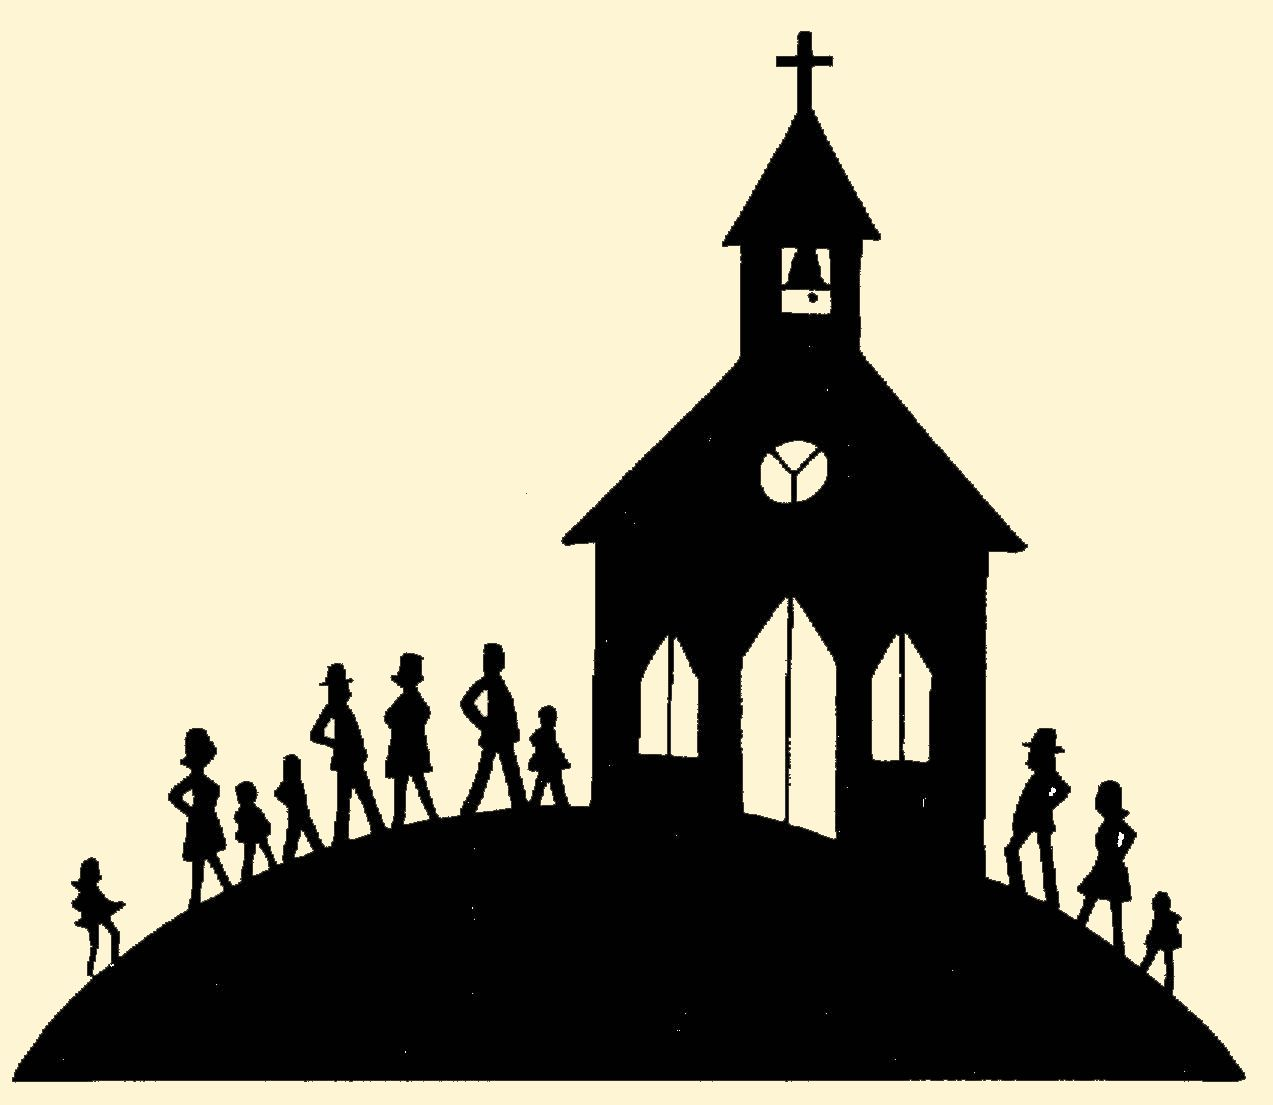 1273x1105 People In Churches The Church